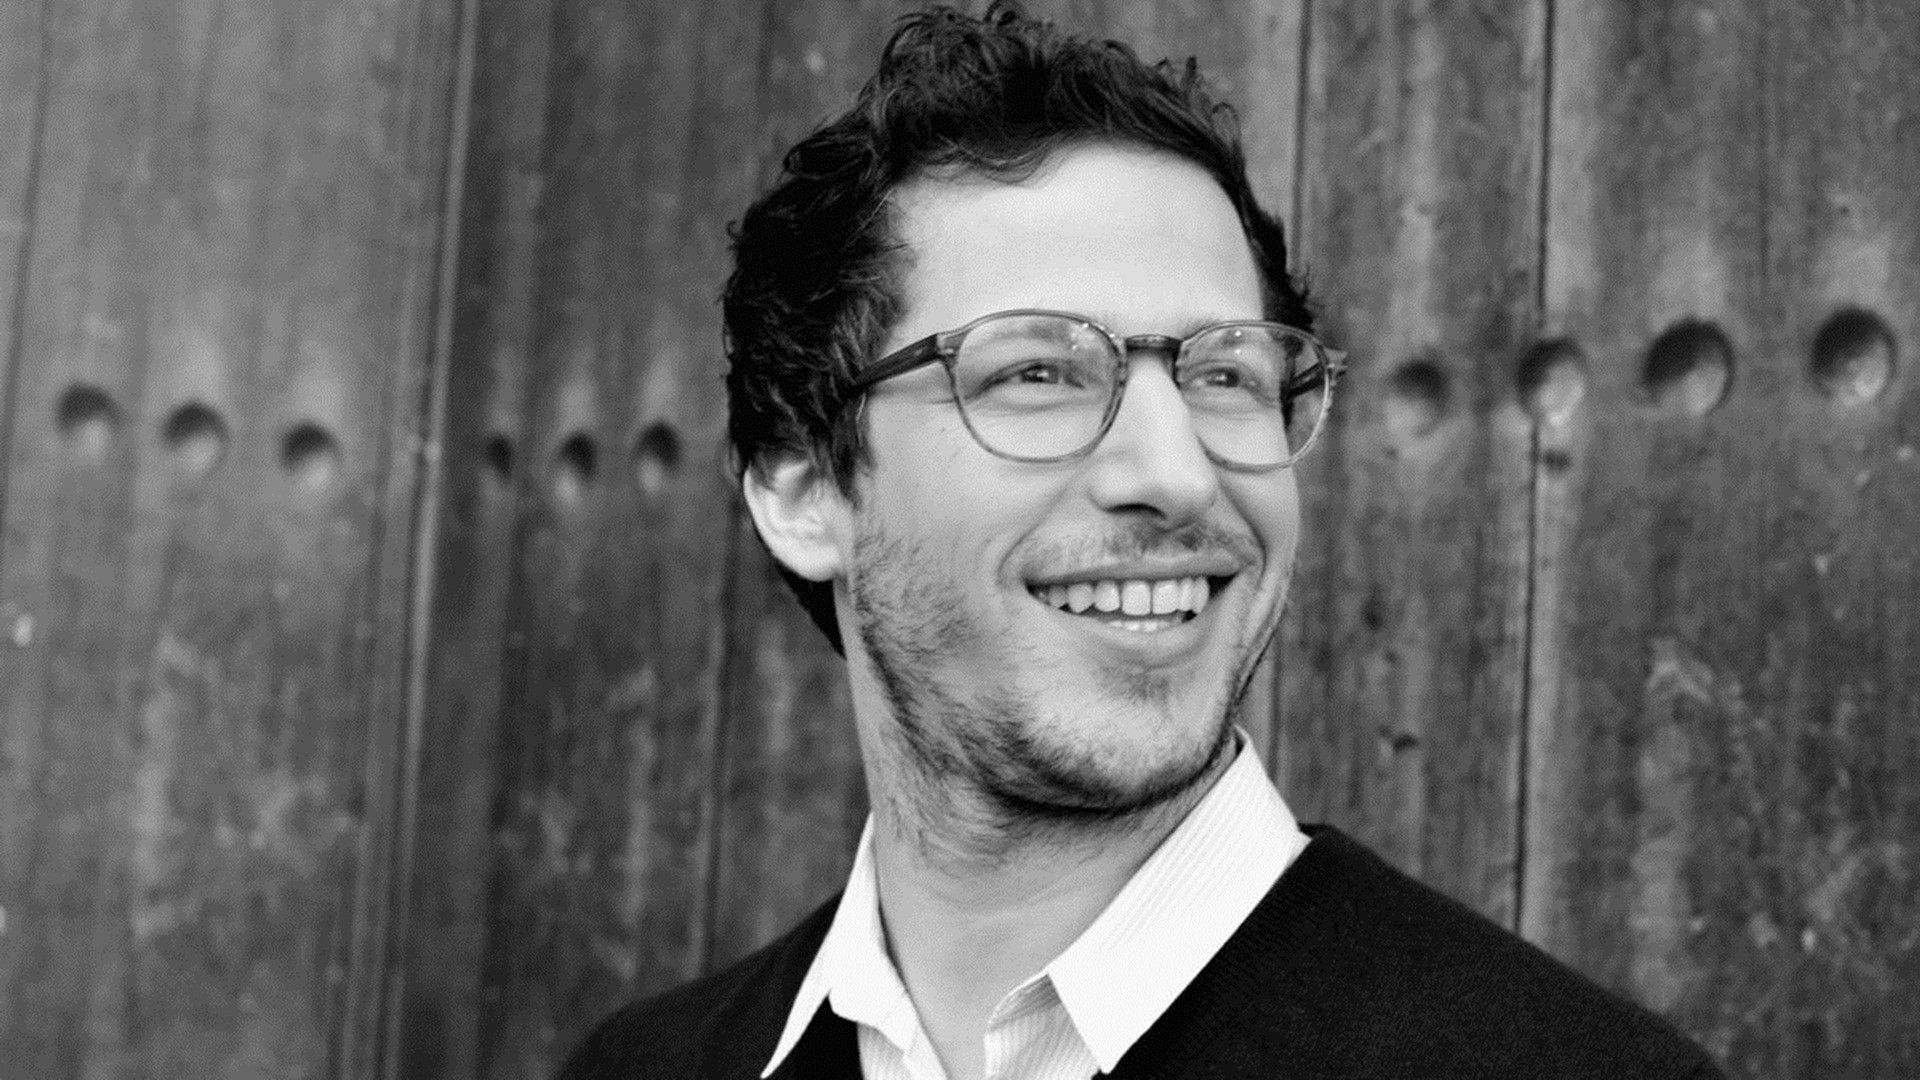 Andy Samberg Computer Wallpaper